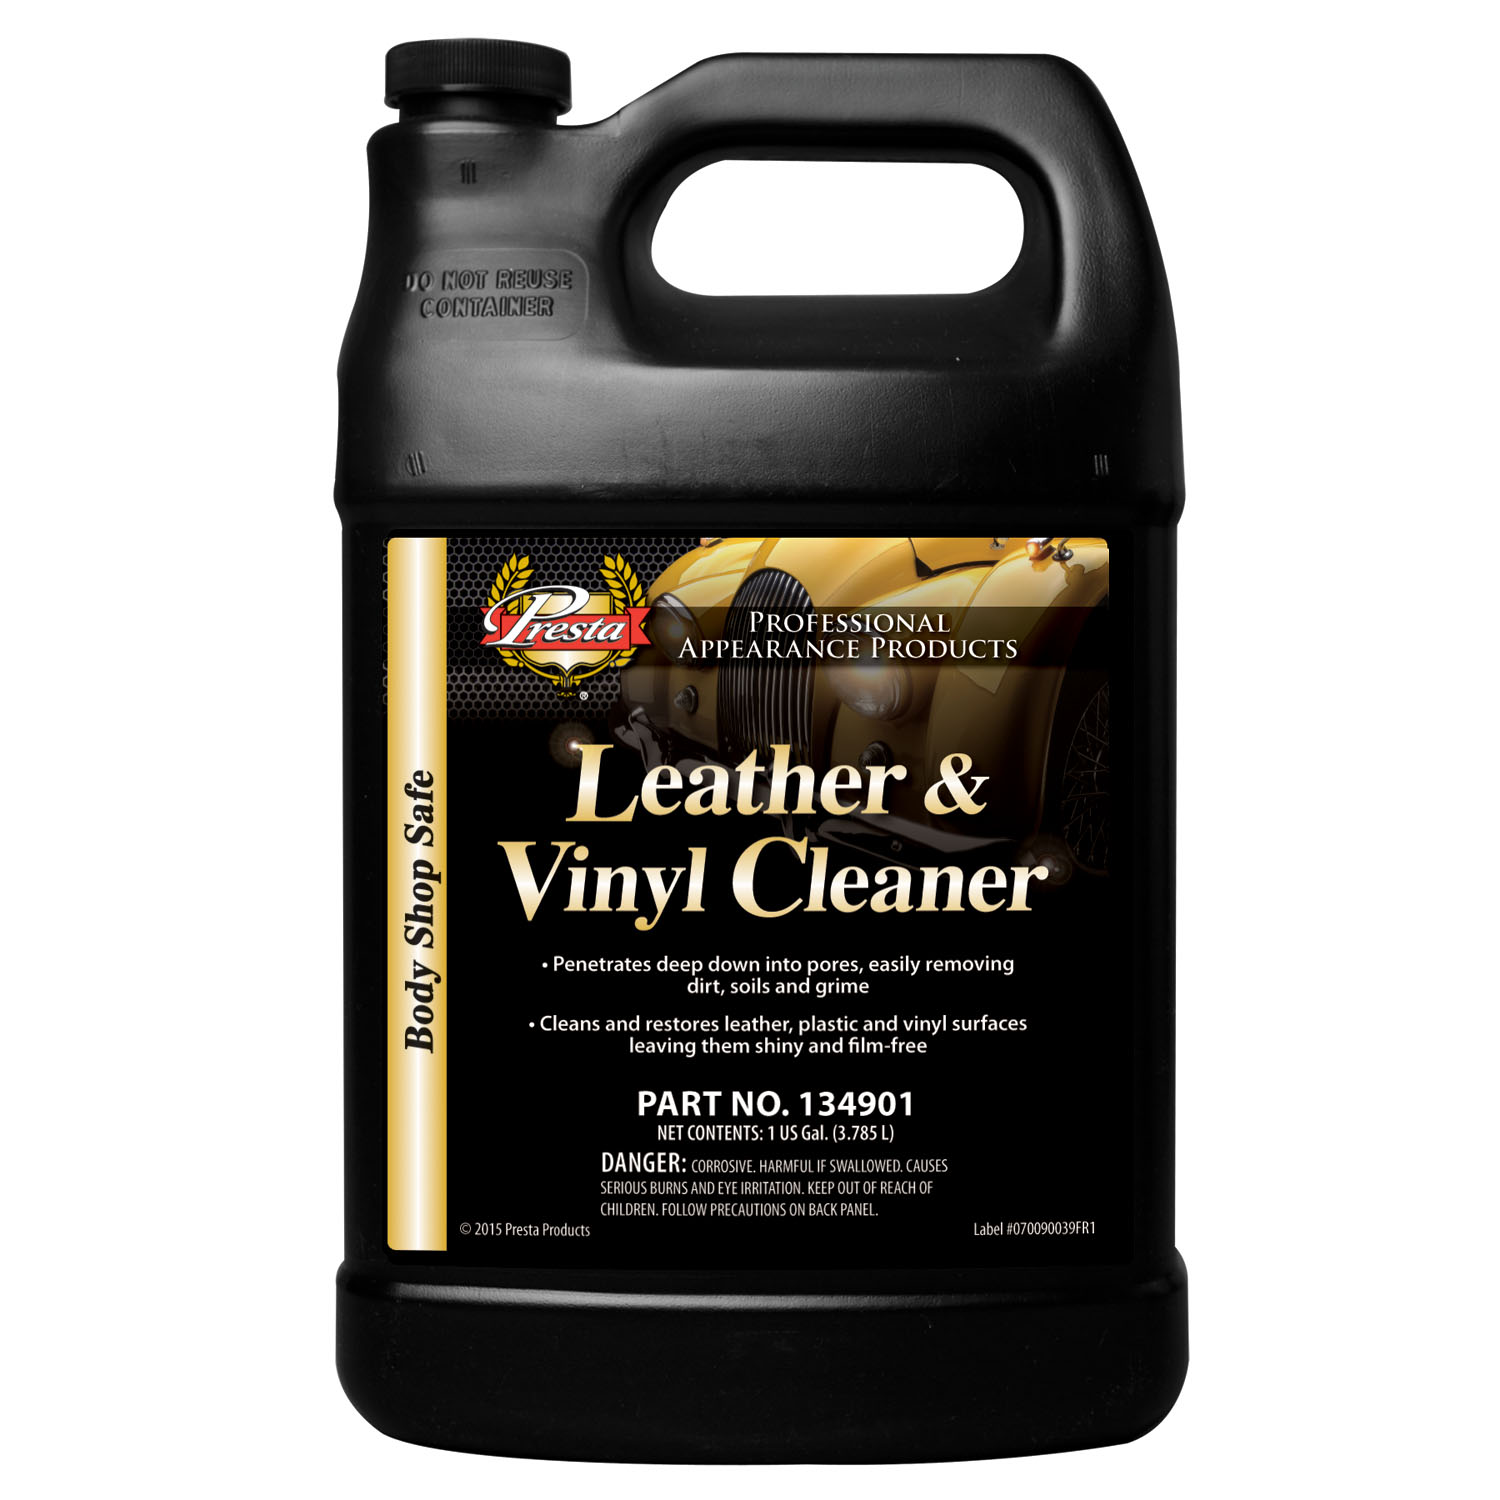 Presta Leather & Vinyl Cleaner, 1 Gallon PST-134901